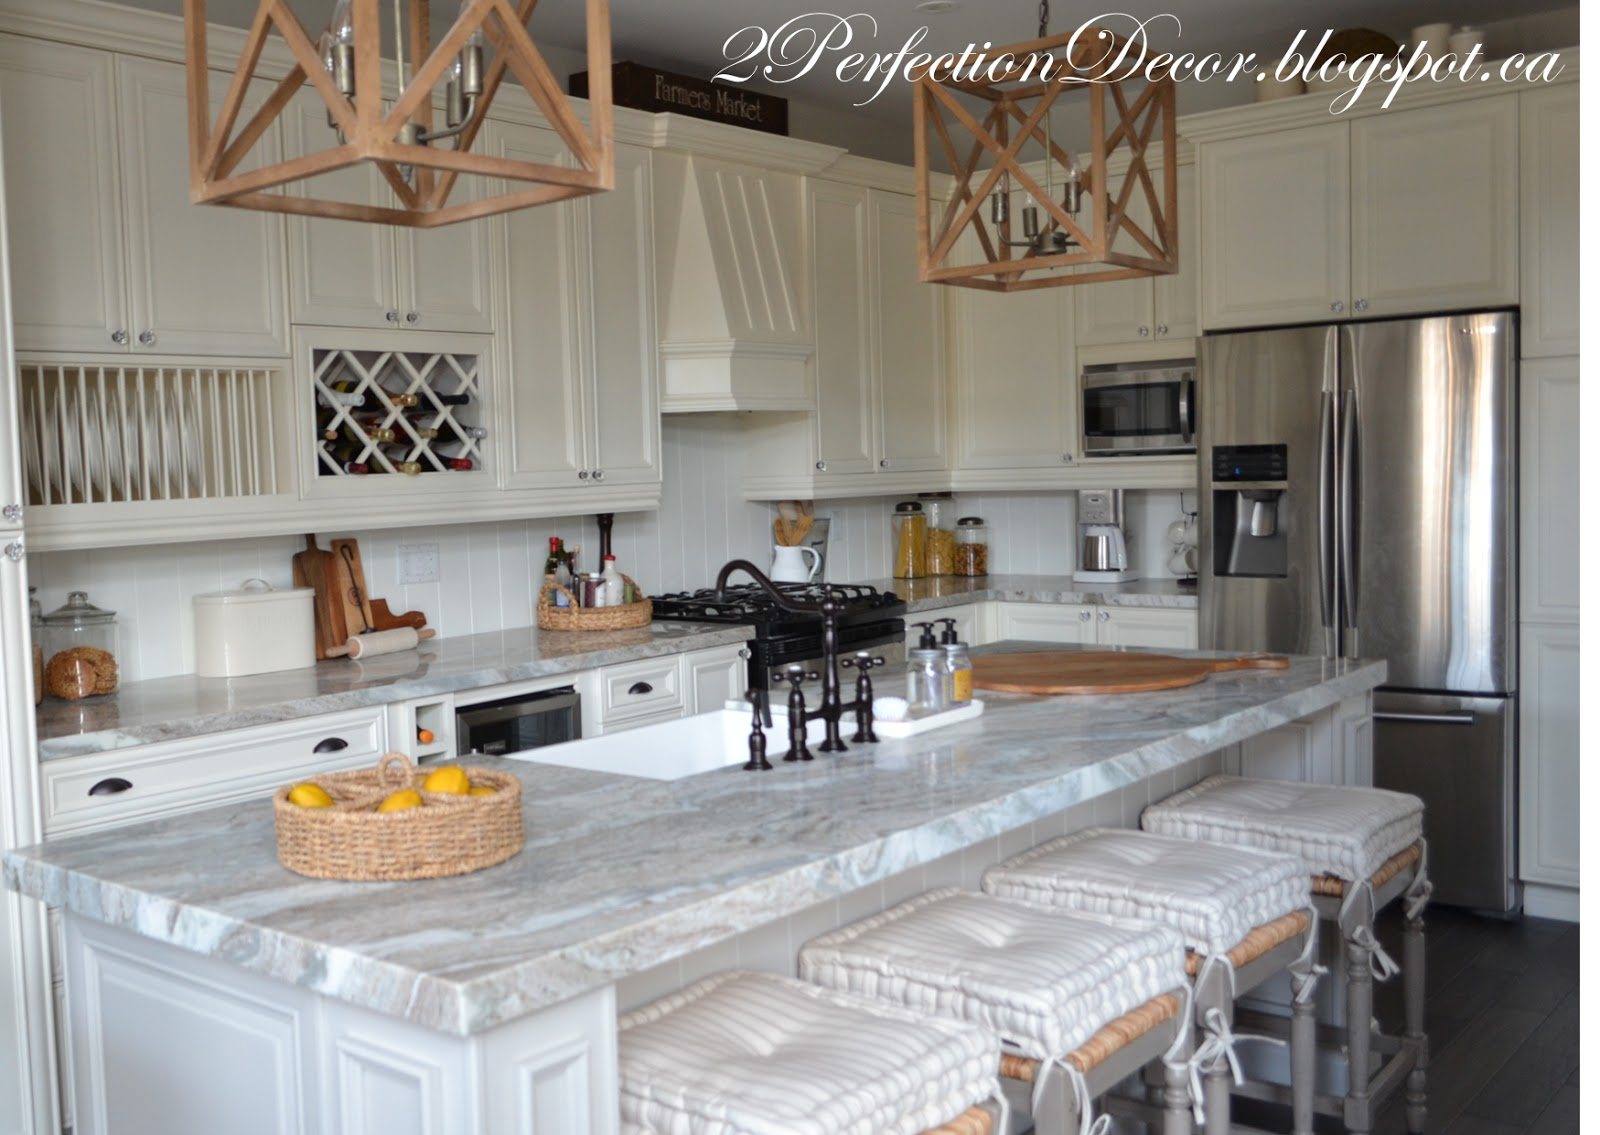 2perfection decor farmhouse kitchen reveal - Kitchen table richmond vt ...